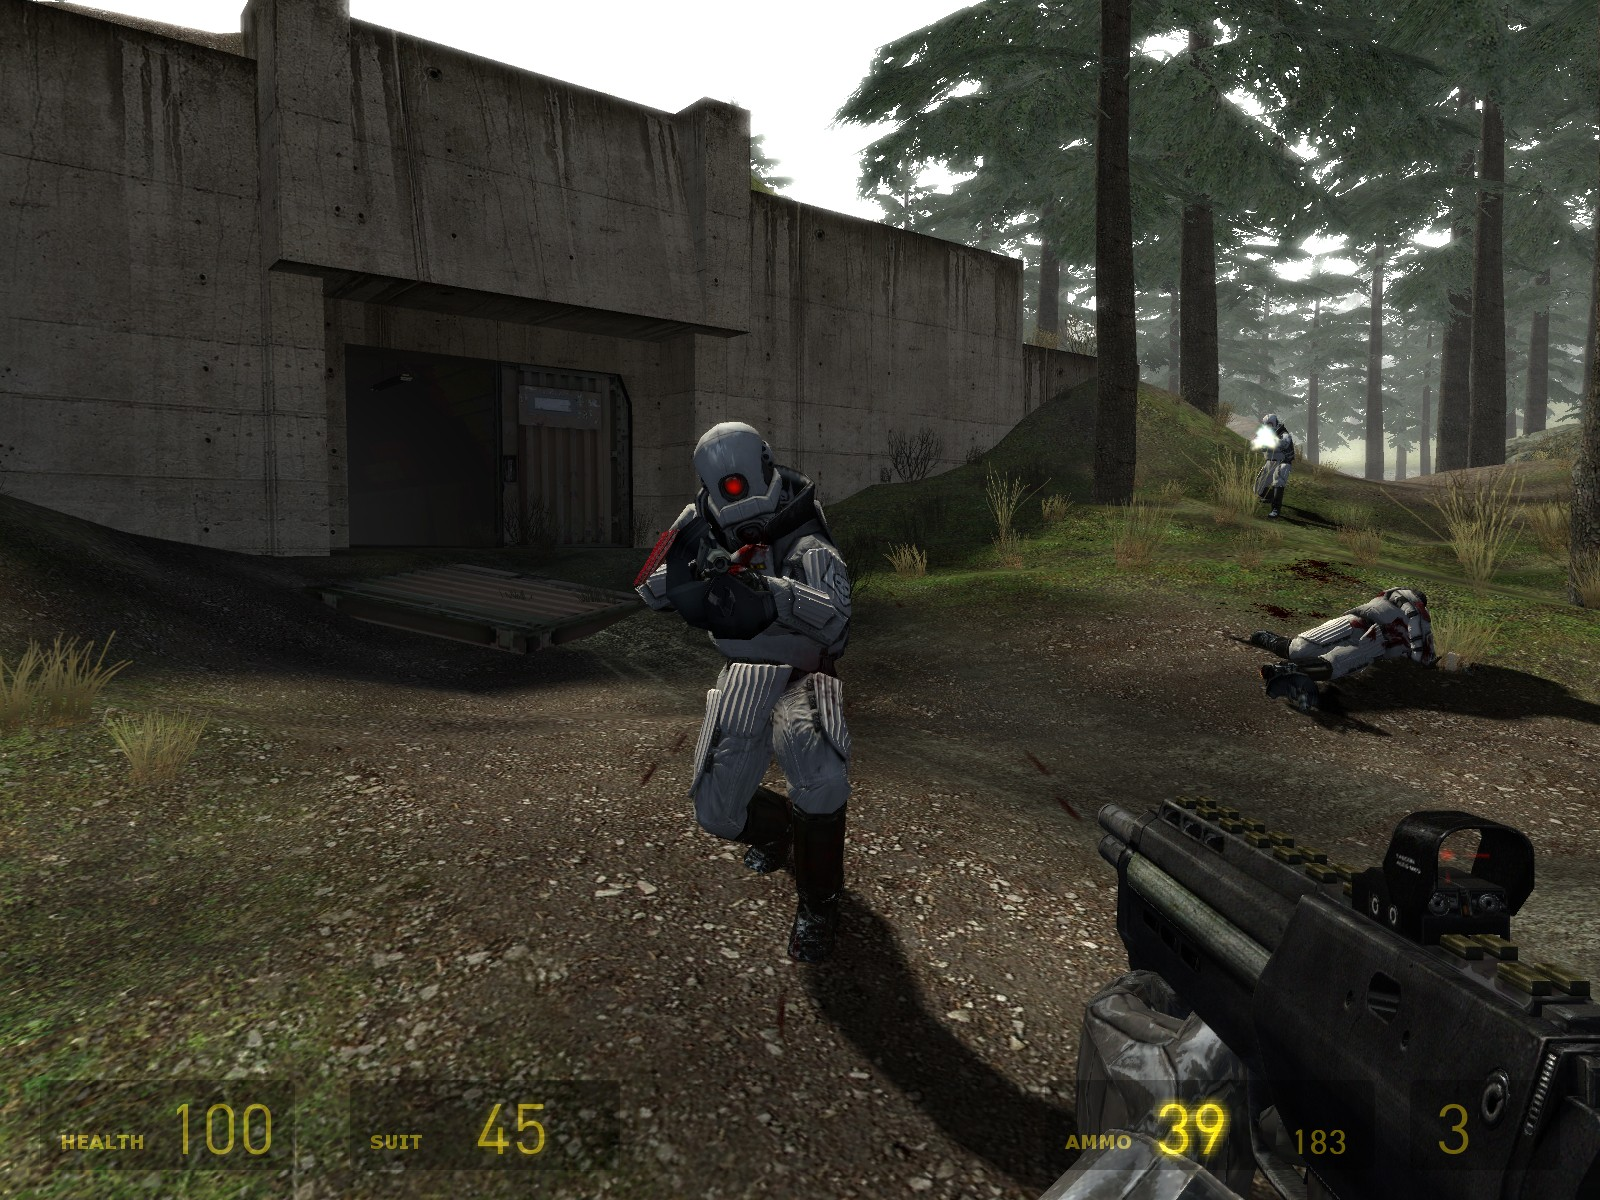 http://tothegame.com/res/game/5099/feature/2006-09-27/screen7_large.jpg